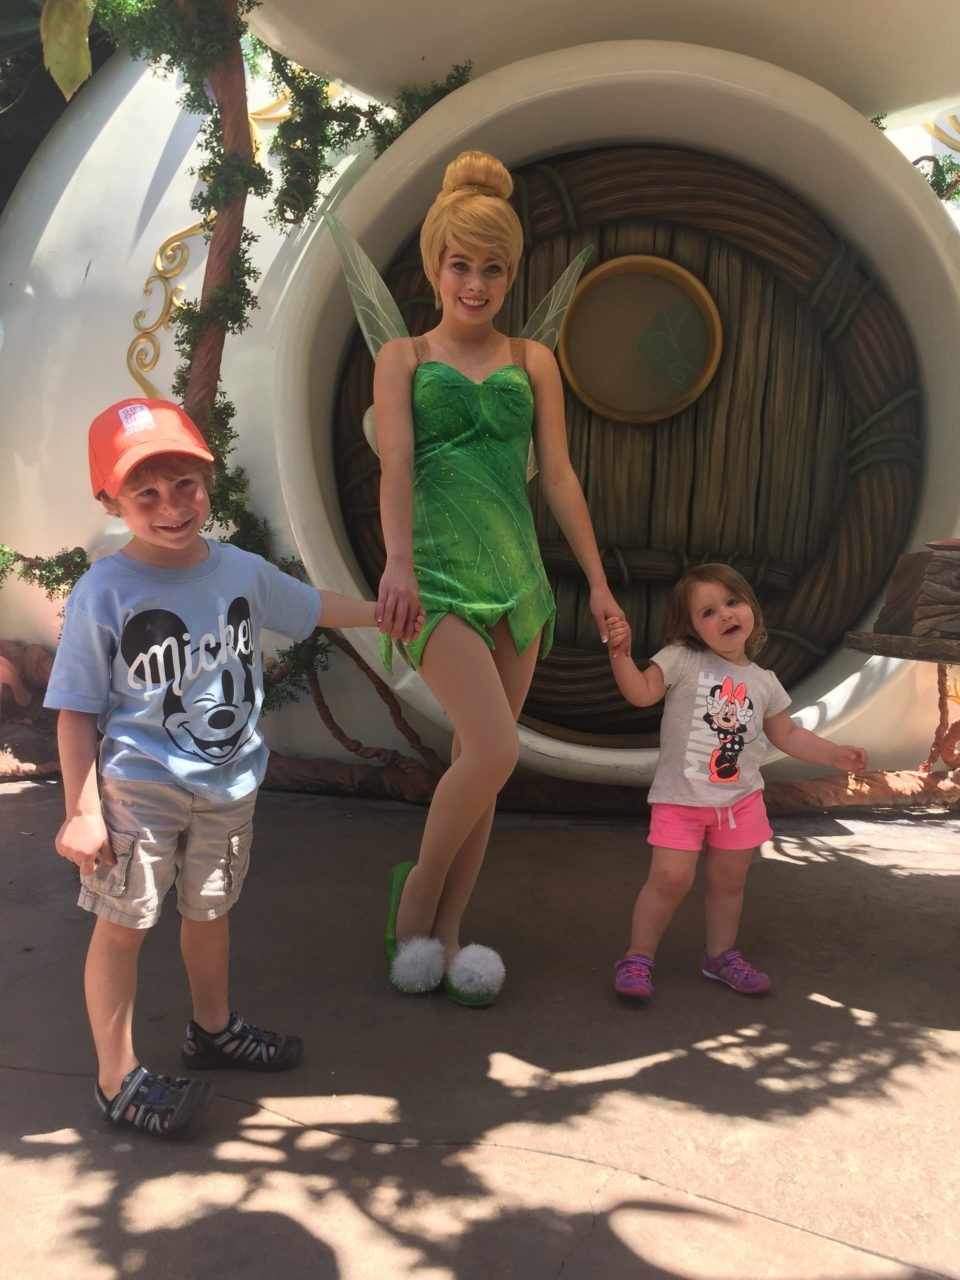 Meeting Tinkerbell was our best character experience at Disneyland